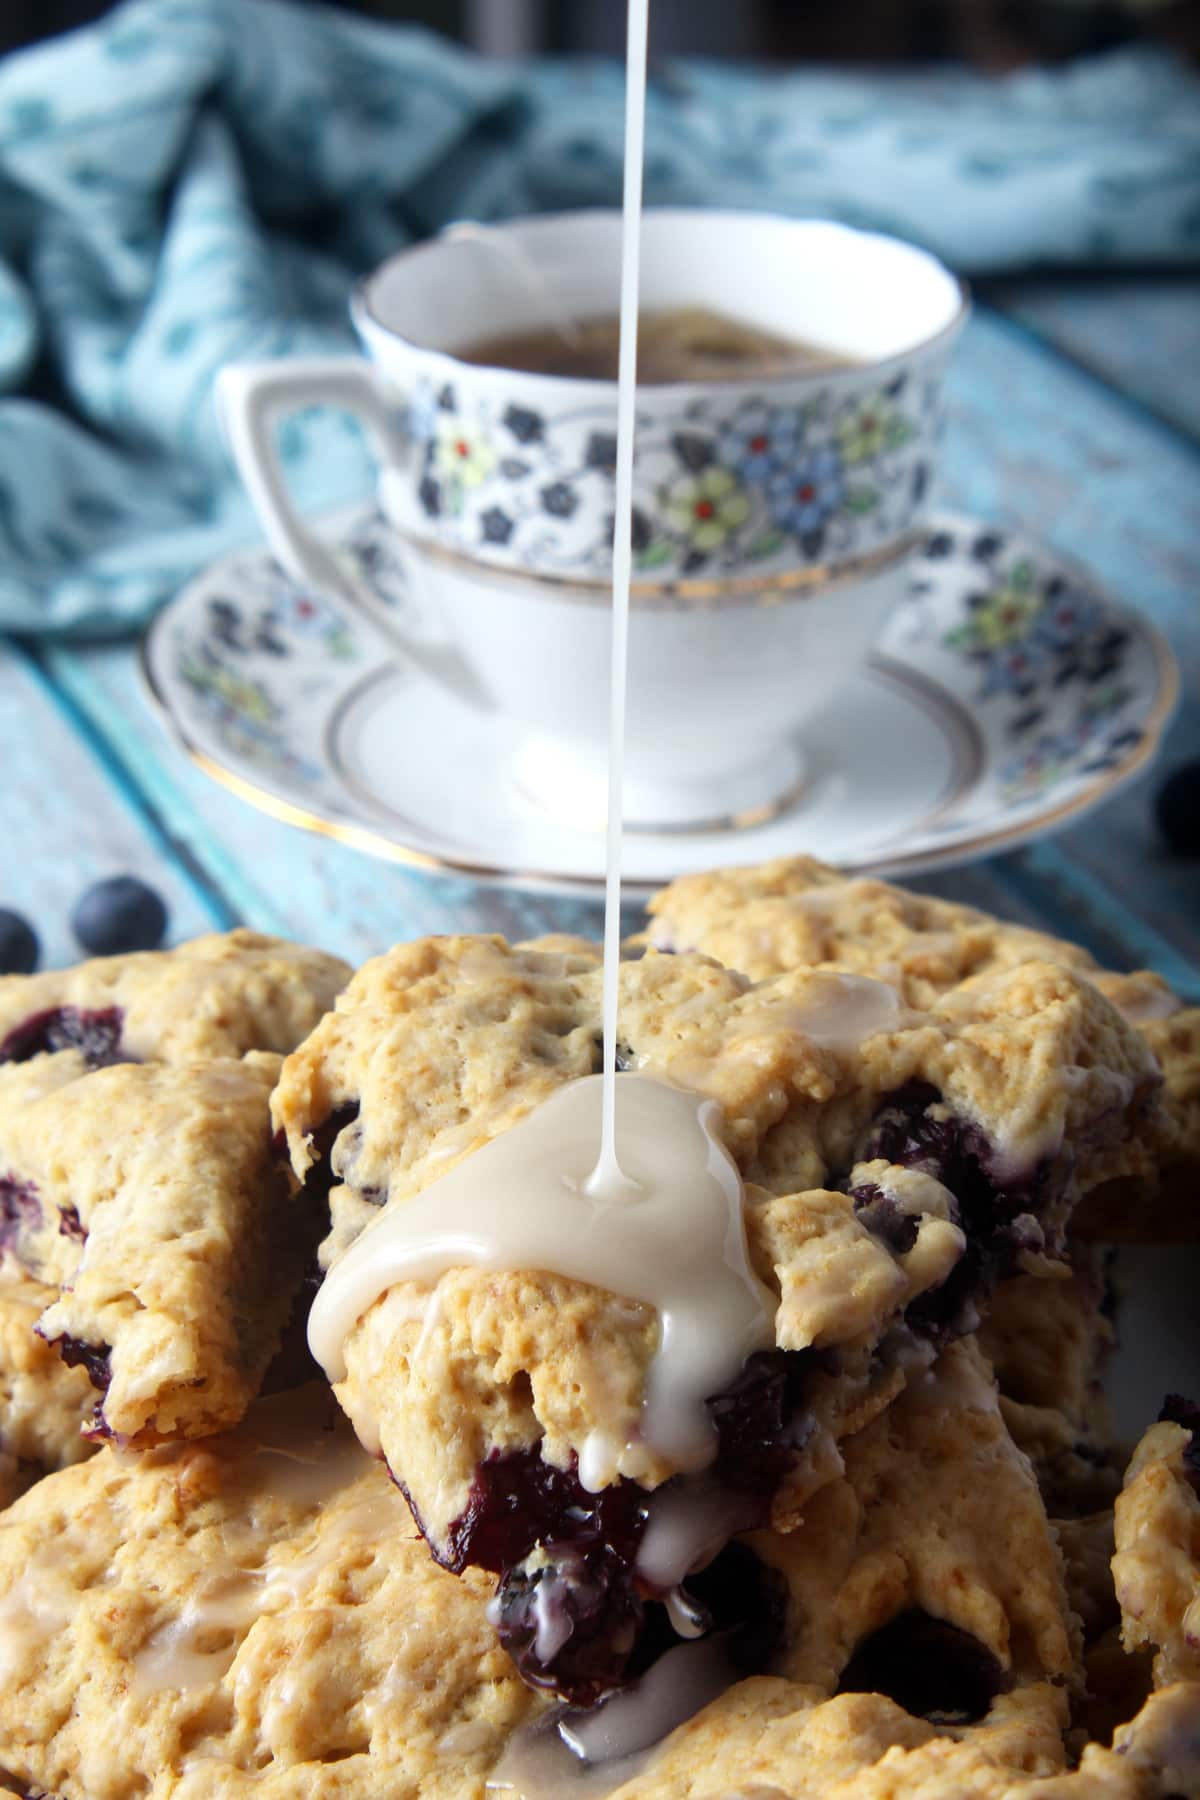 delicious glaze being drizzled on top of vegan blueberry scones